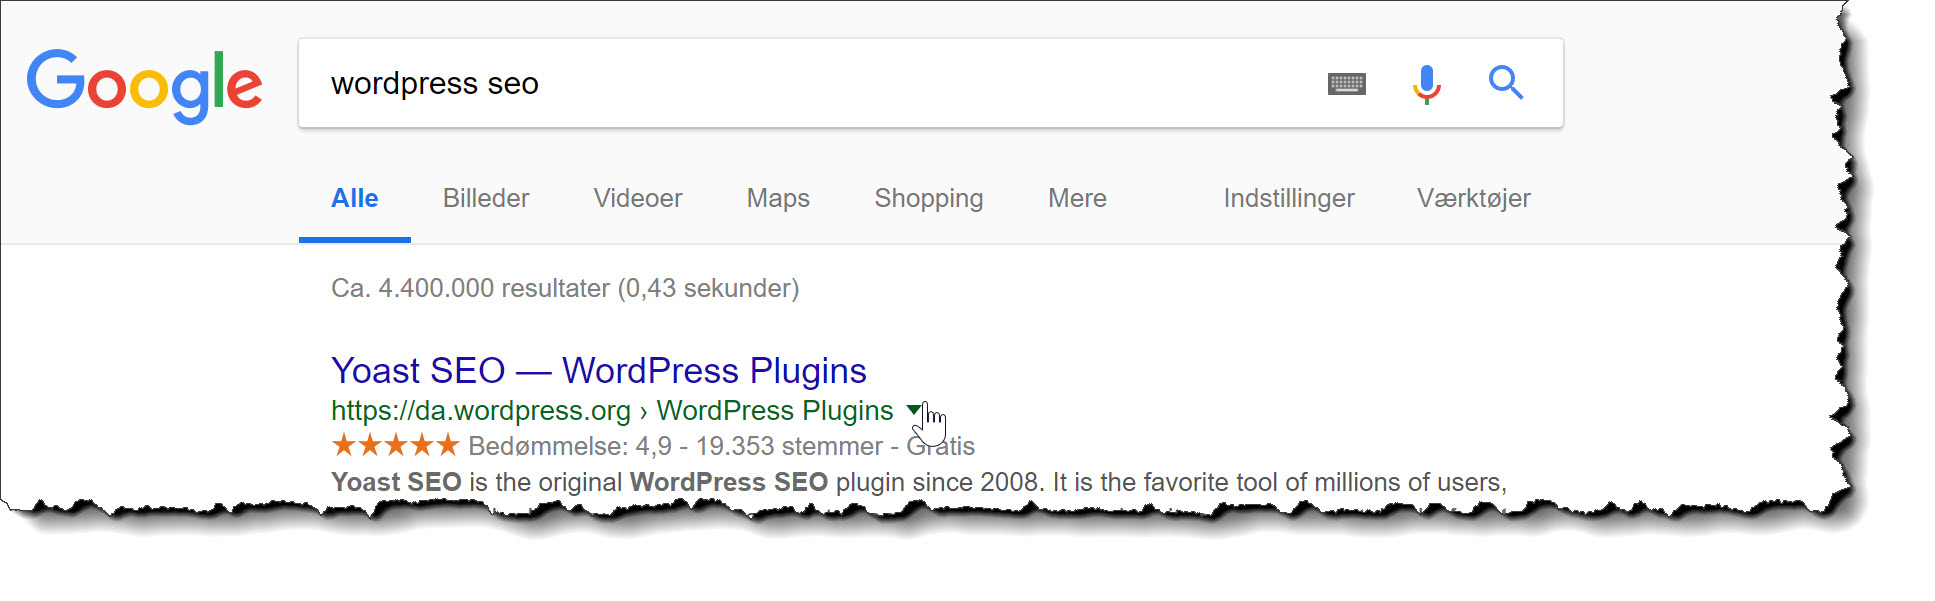 Søgemaskineoptimering - SEO - for WordPress (dansk guide)